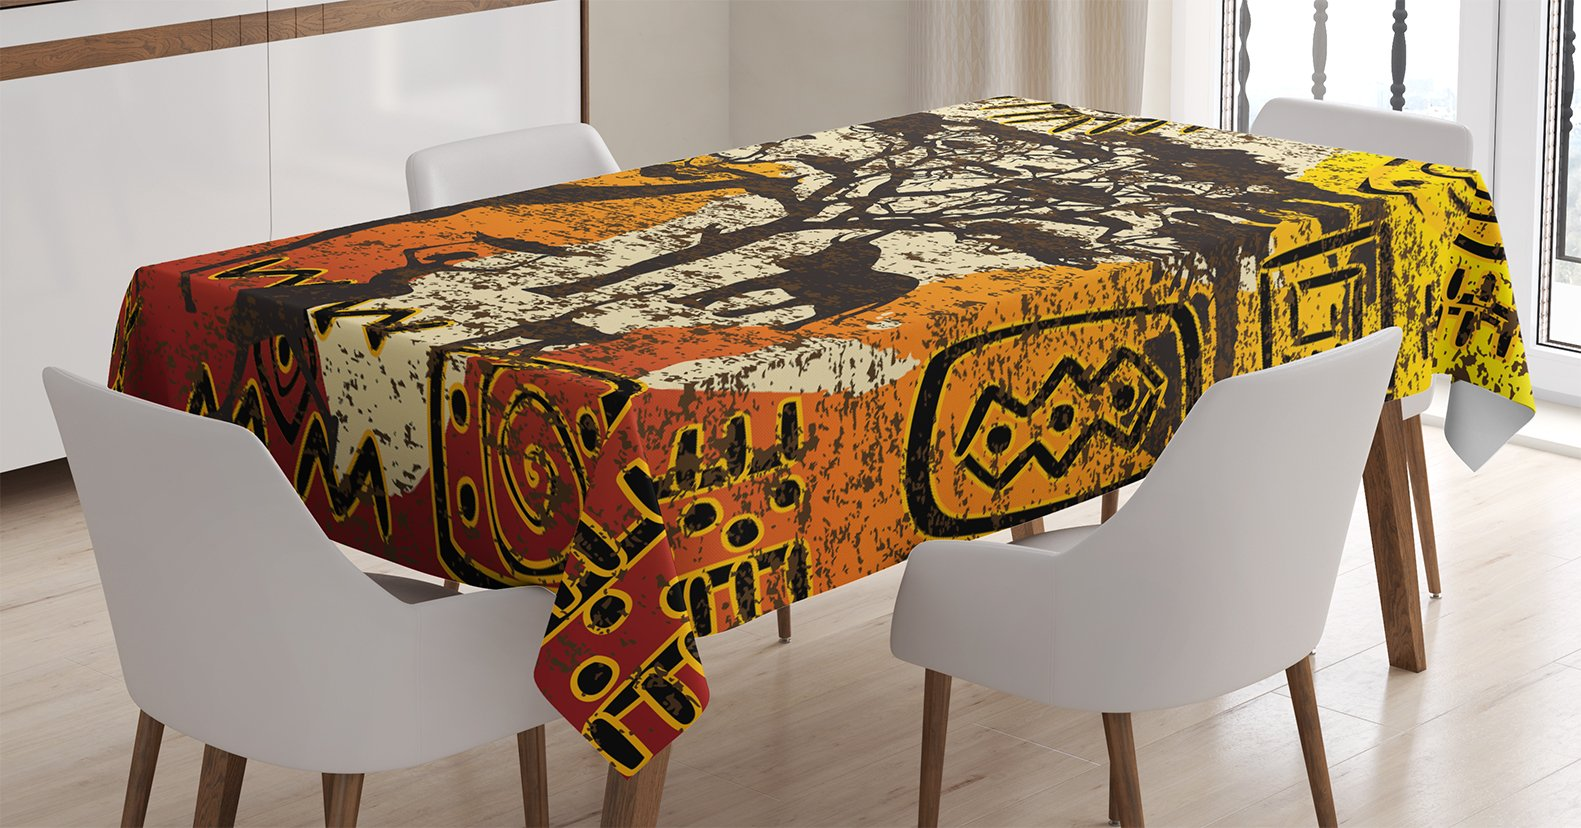 Ambesonne African Tablecloth, African Animals Safari Theme Ancient Cultural Ethnic Art Grunge Bohemian, Dining Room Kitchen Rectangular Table Cover, 60 W X 90 L inches, Yellow Orange Brown